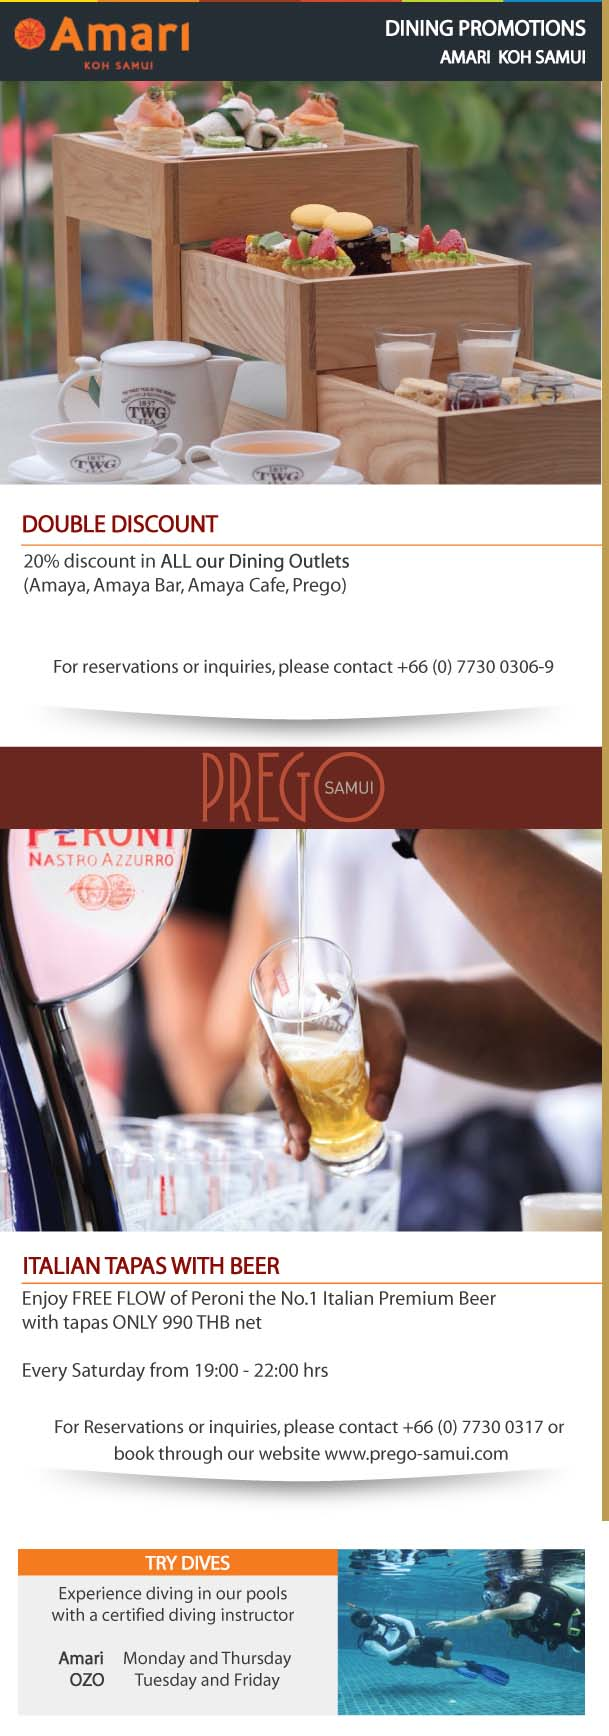 Amari – Dining Card newsletter of May 2018 | Samui Times